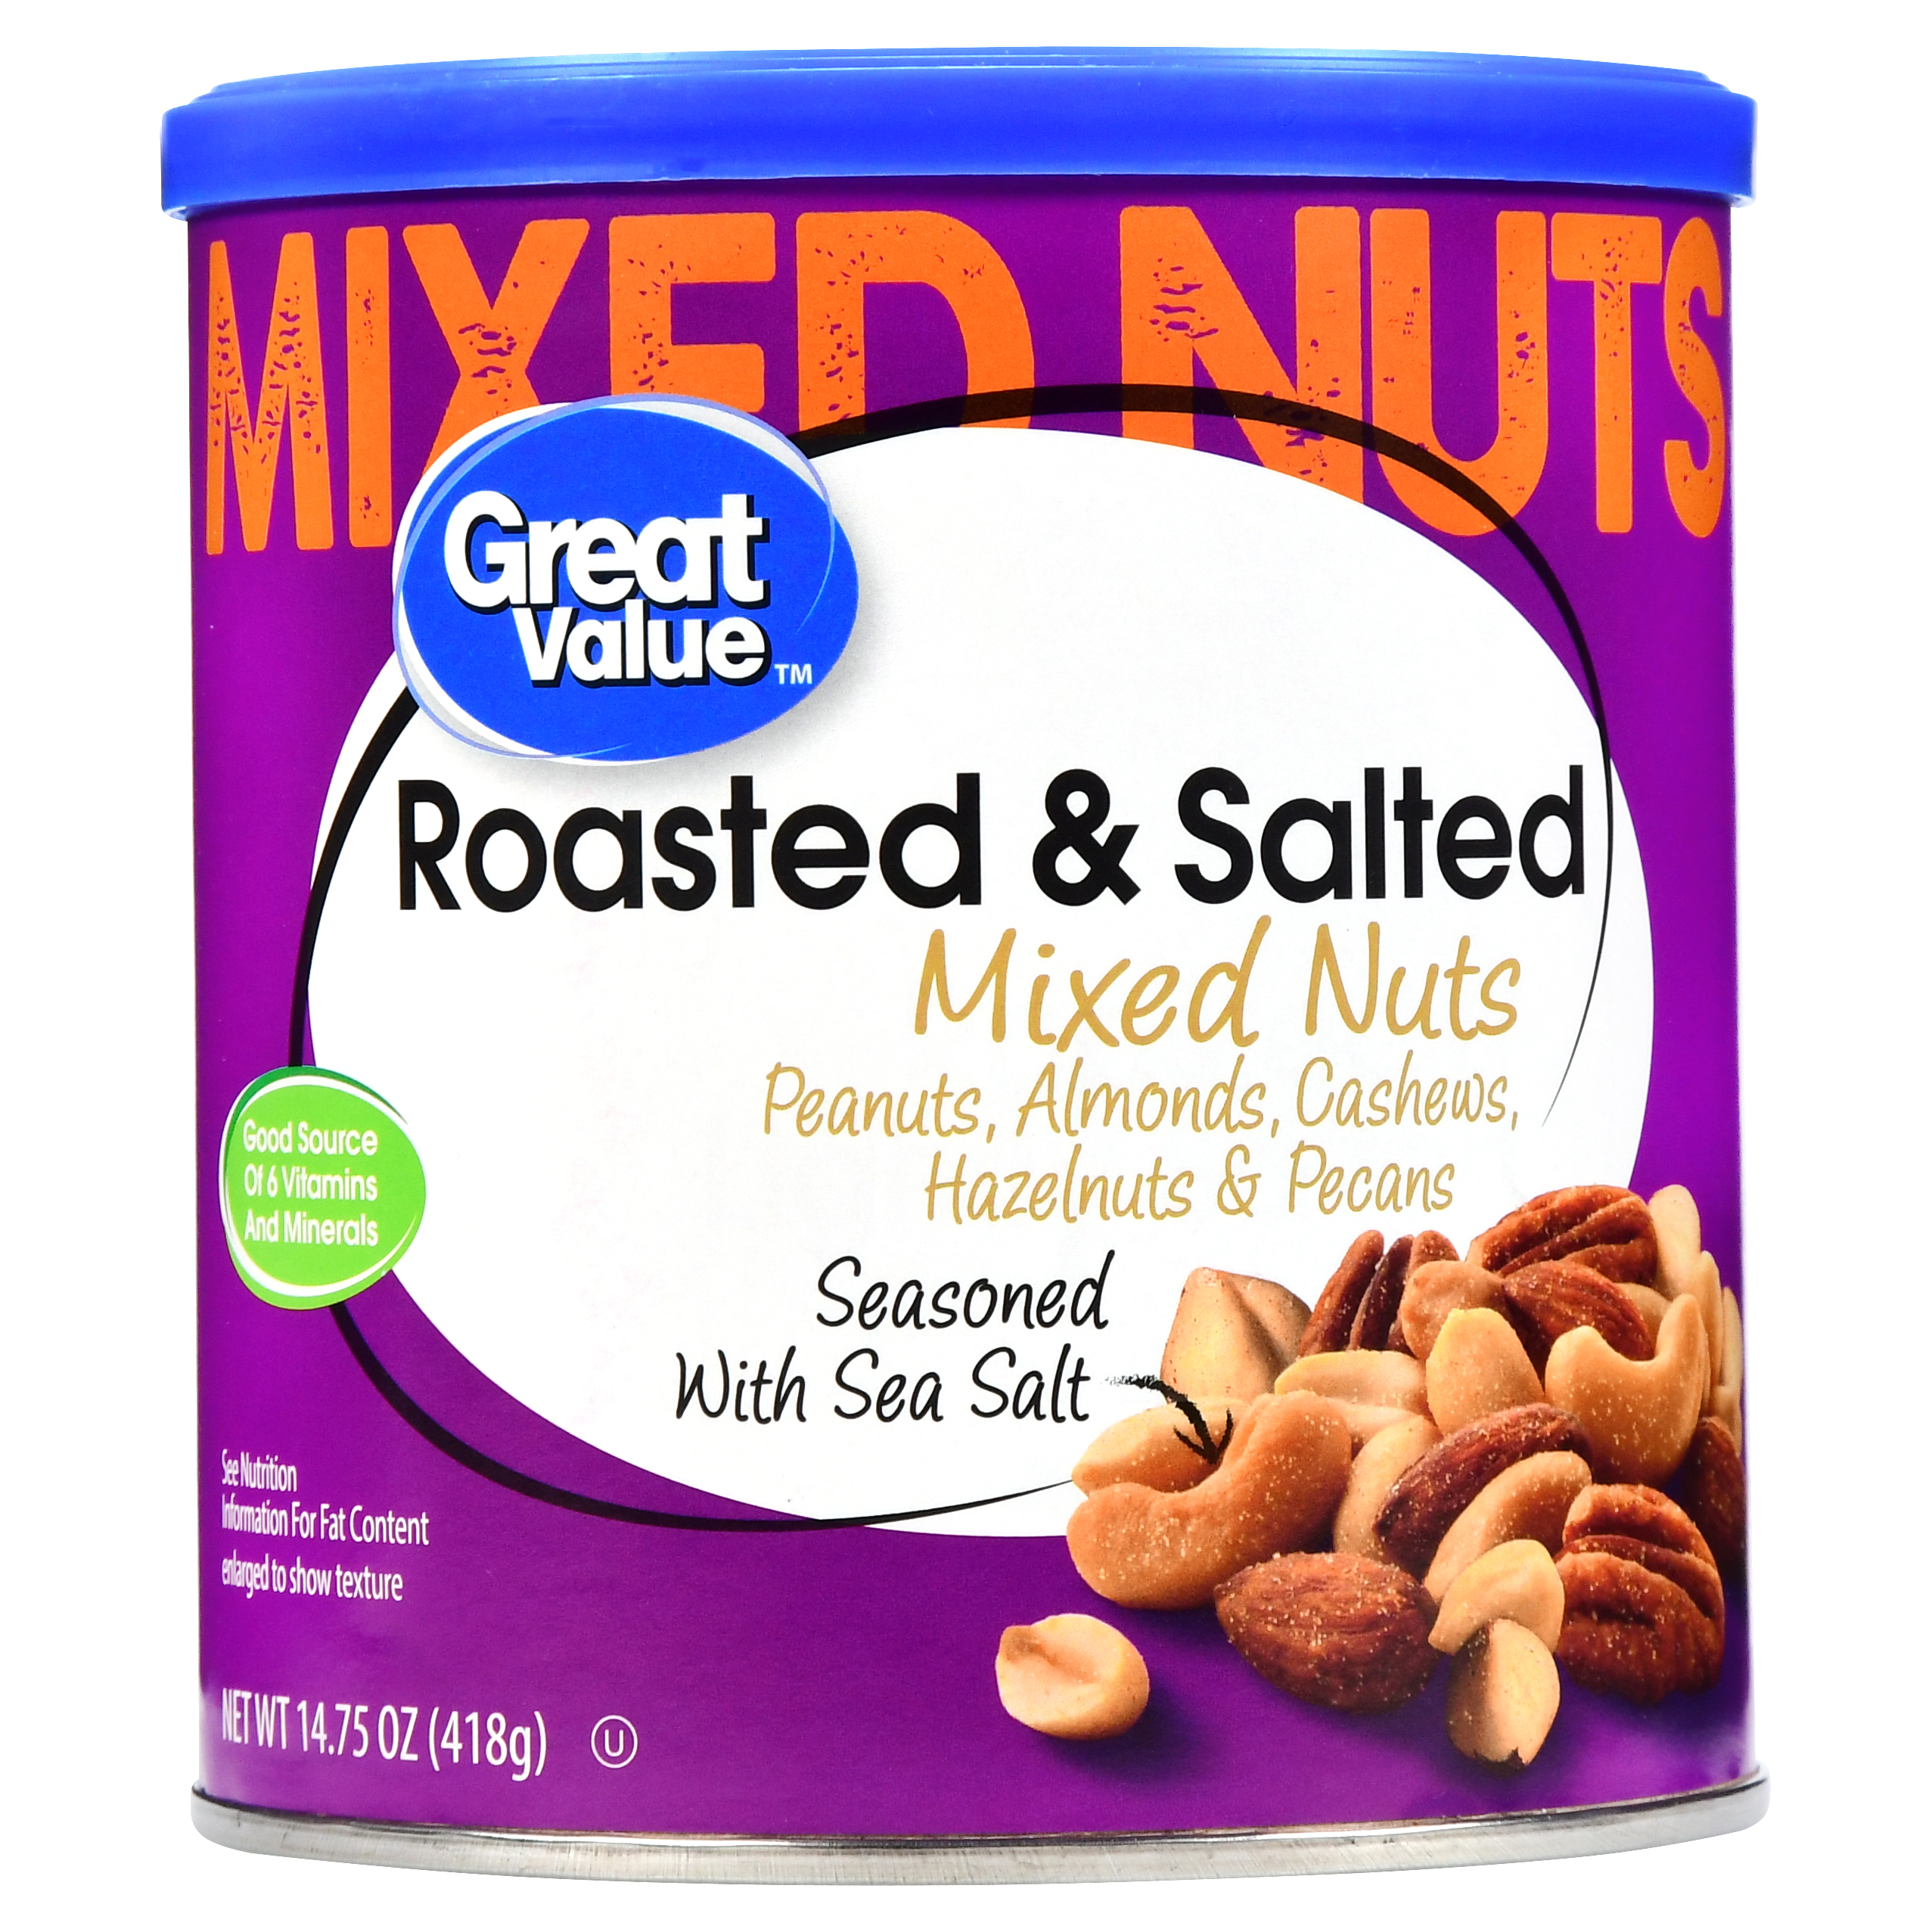 Great Value Roasted & Salted Mixed Nuts, 14.75 oz